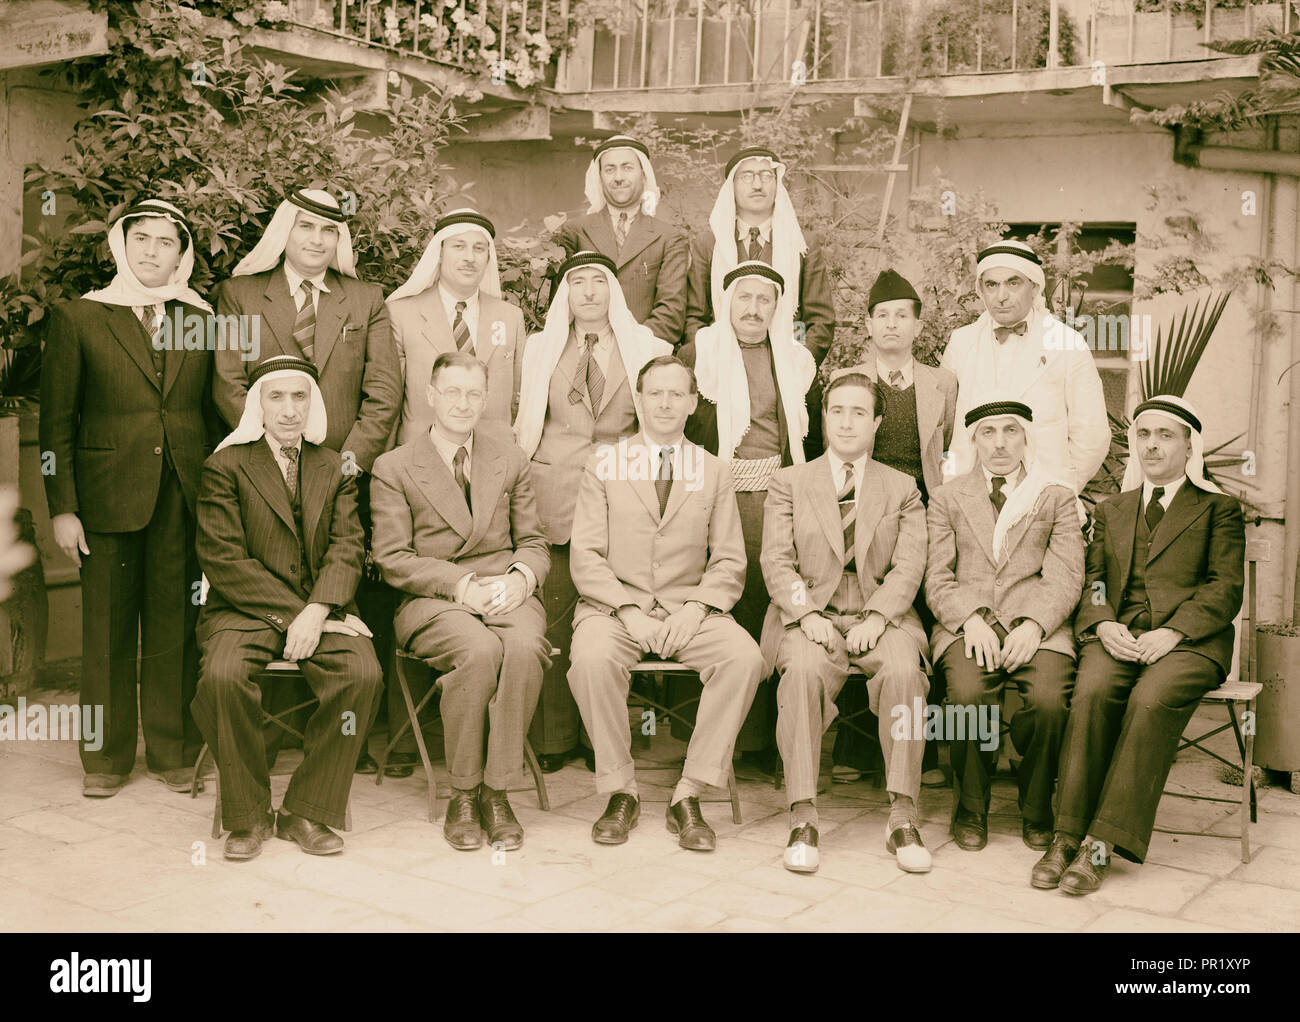 Merchants Association. 1940, Middle East, Israel and/or Palestine - Stock Image